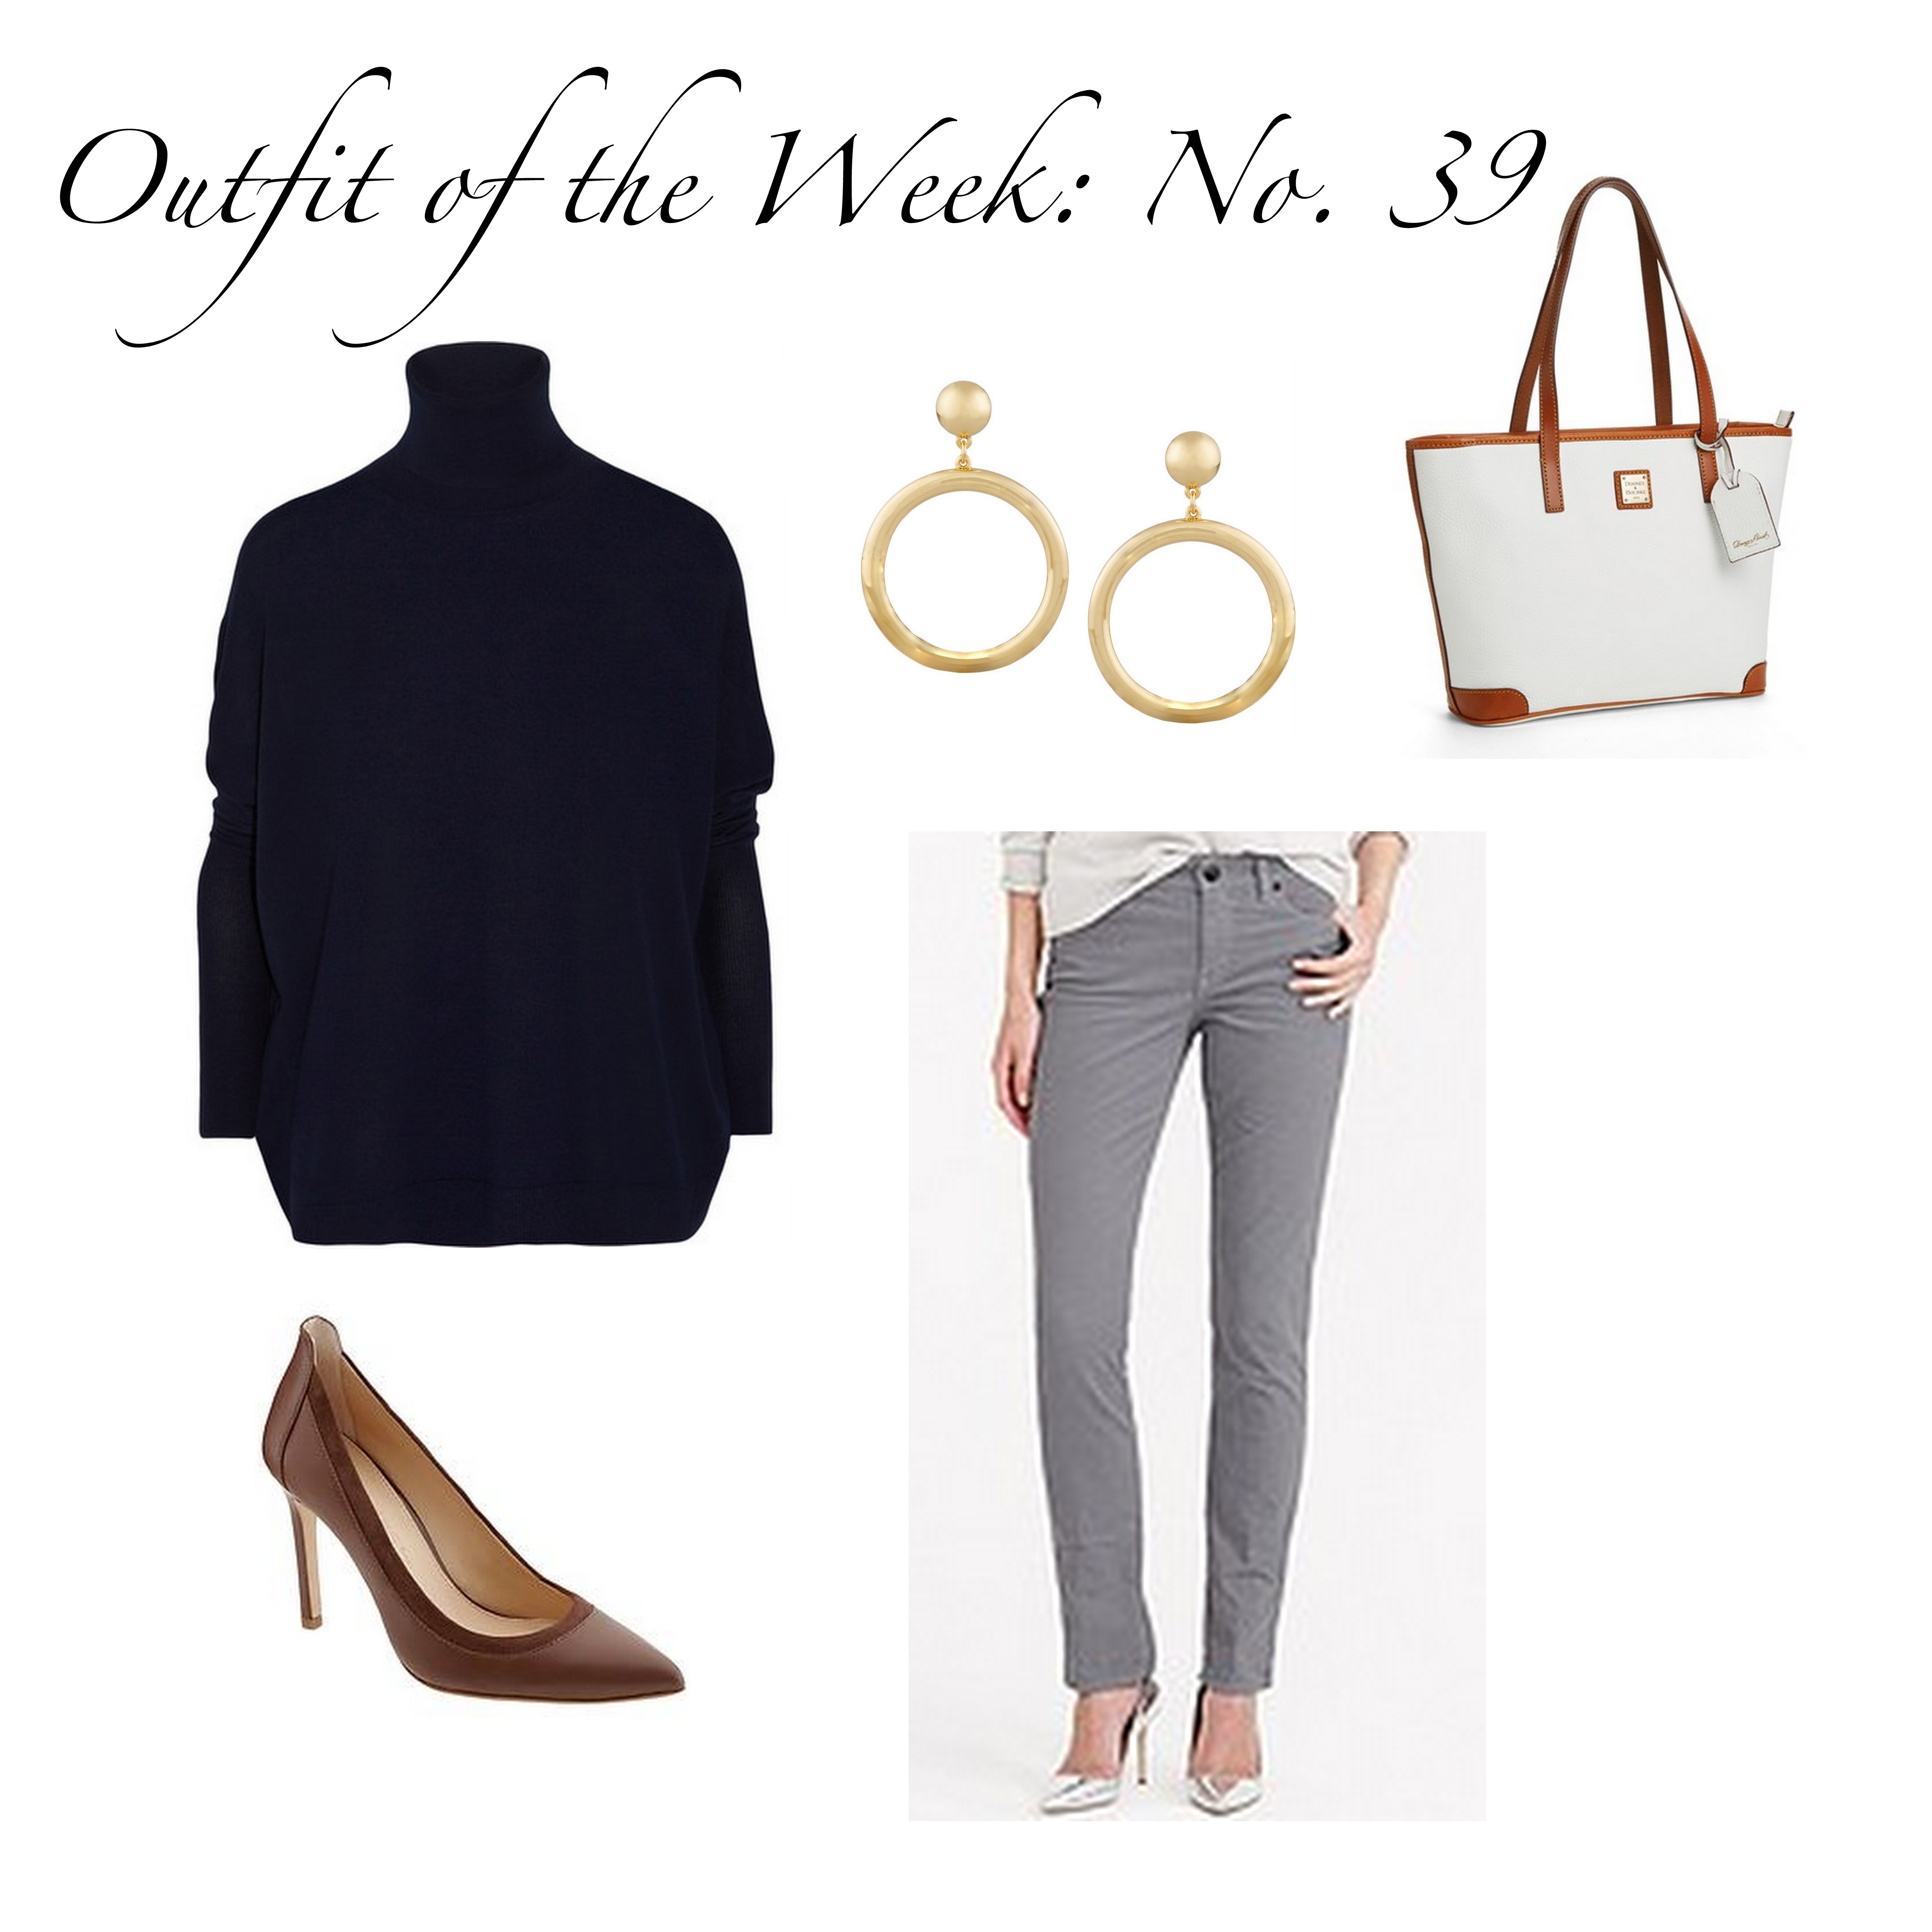 outfit39